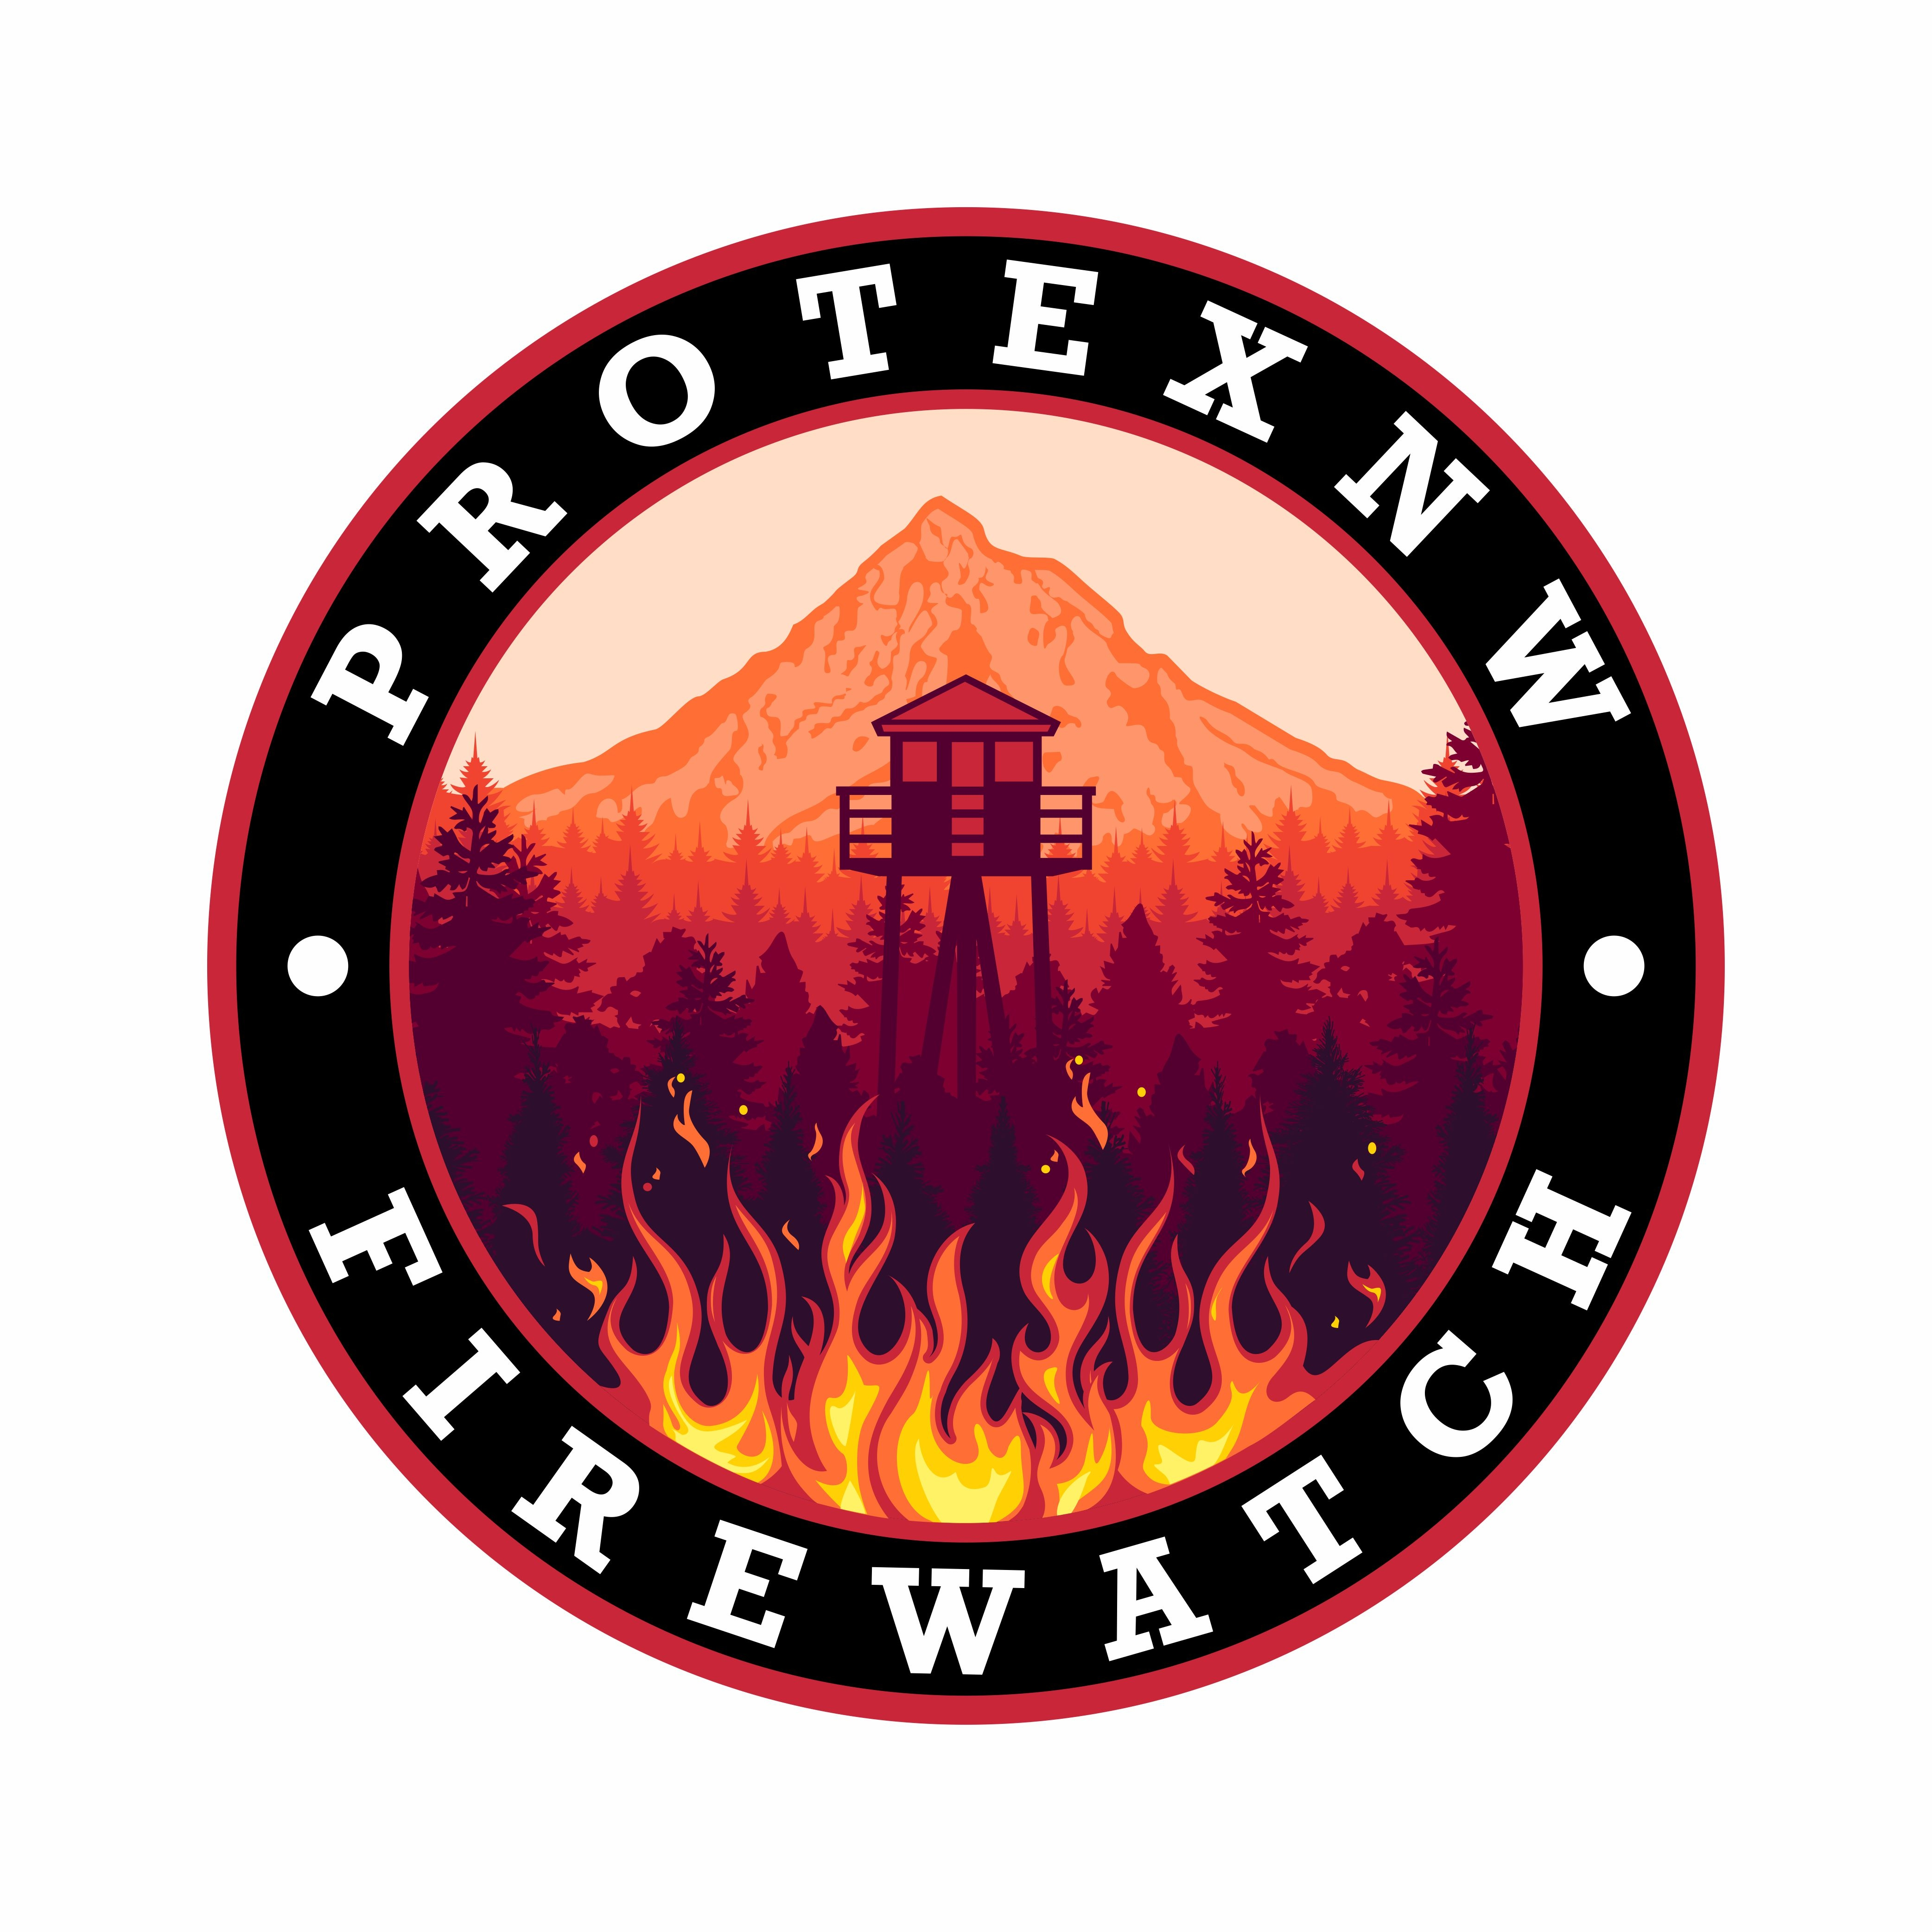 Protex NW Security &  Fire Watch